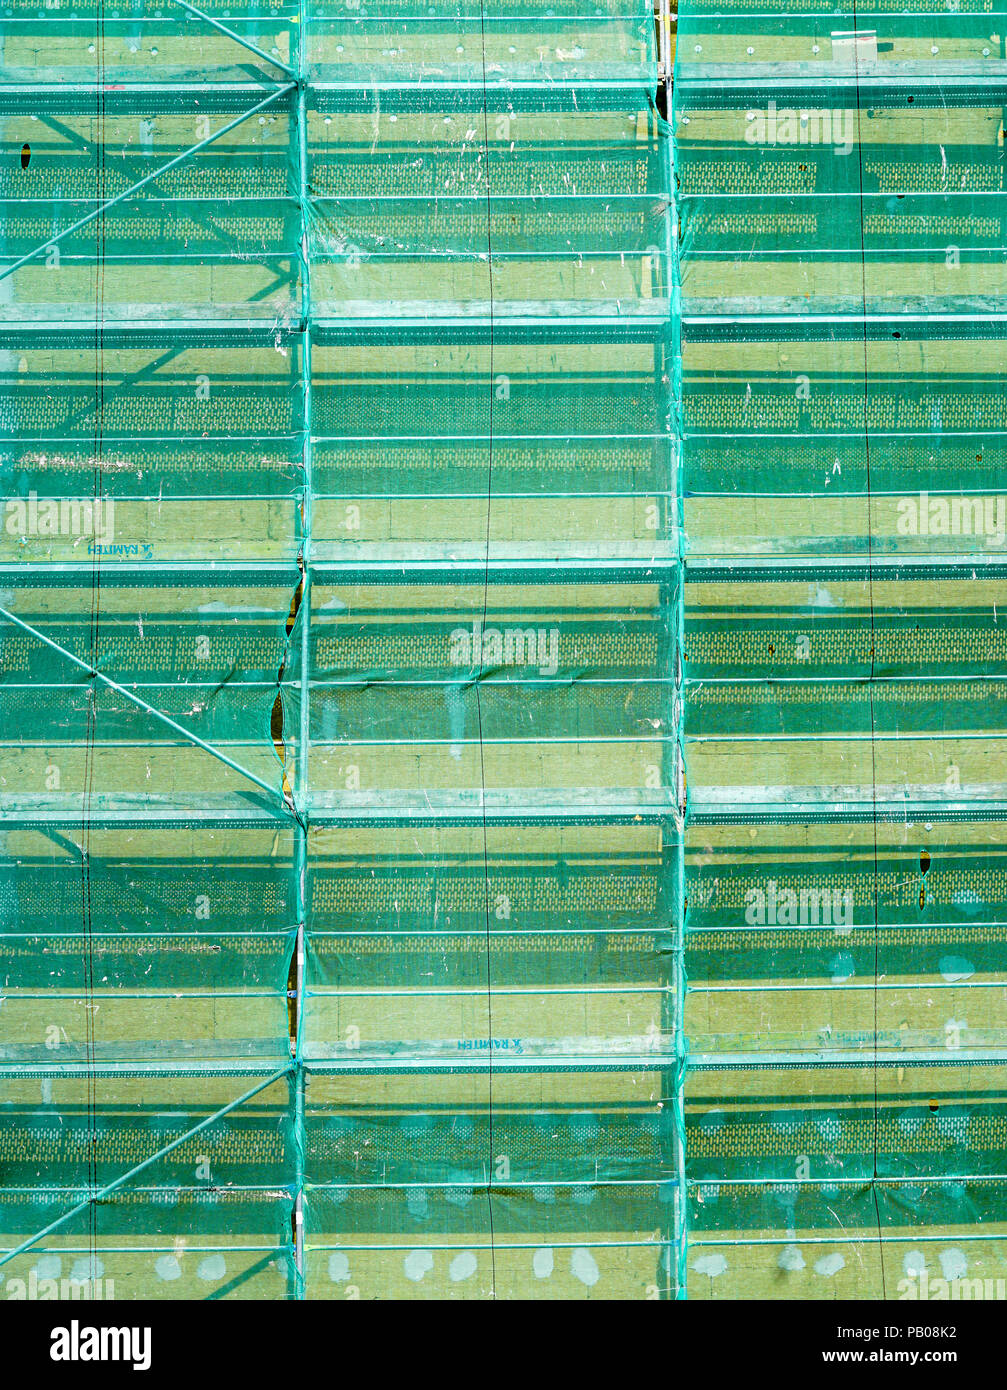 nylon net covers assembled scaffolding - Stock Image